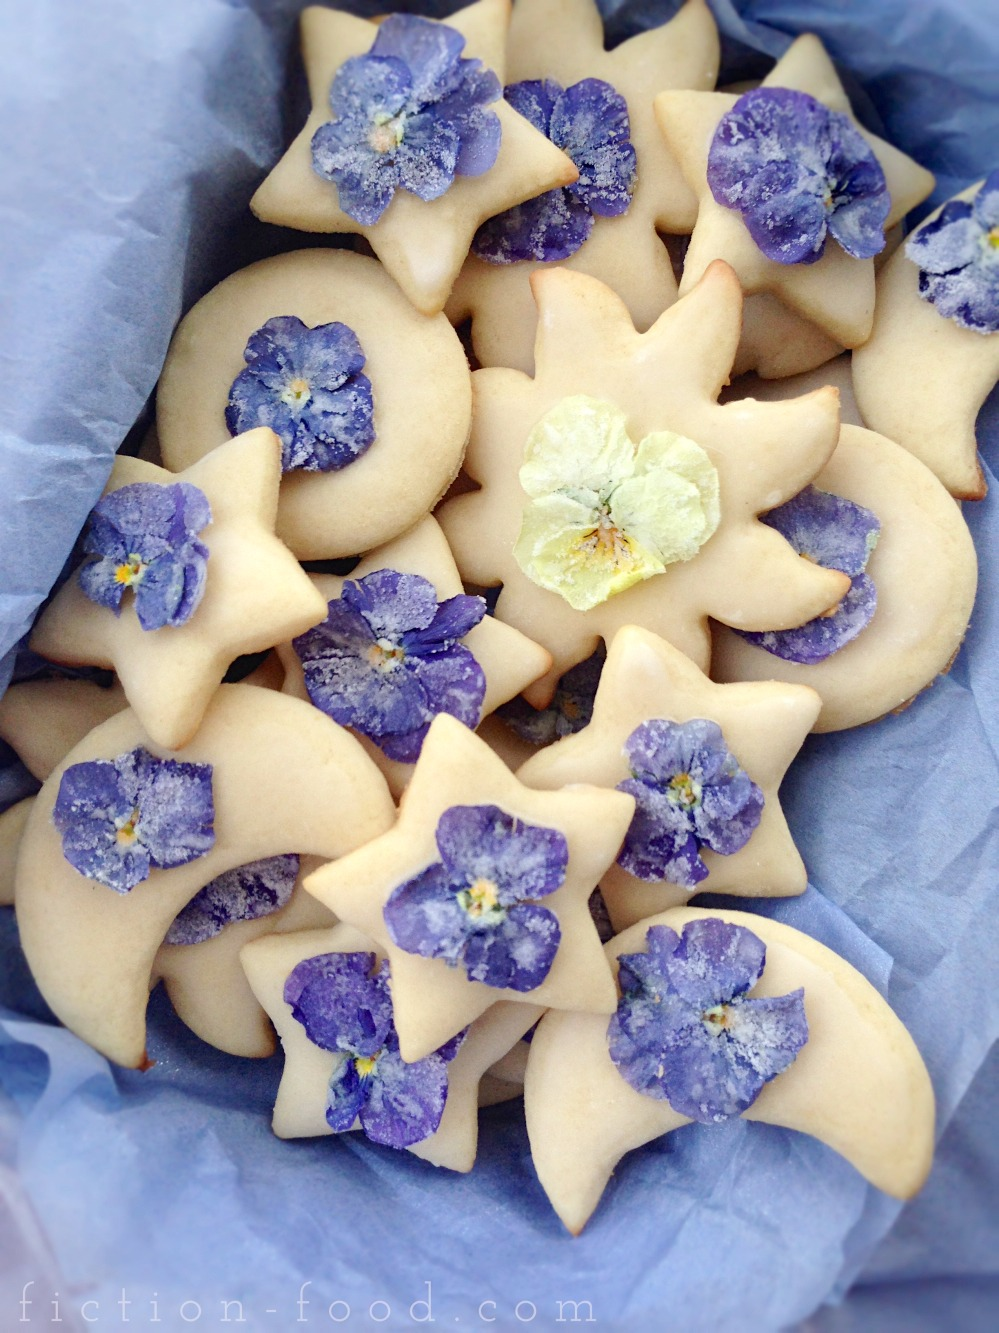 Image courtesy: http://www.fiction-food.com/2014/04/biscuits-cookies-w-sugar-flowers-from.html